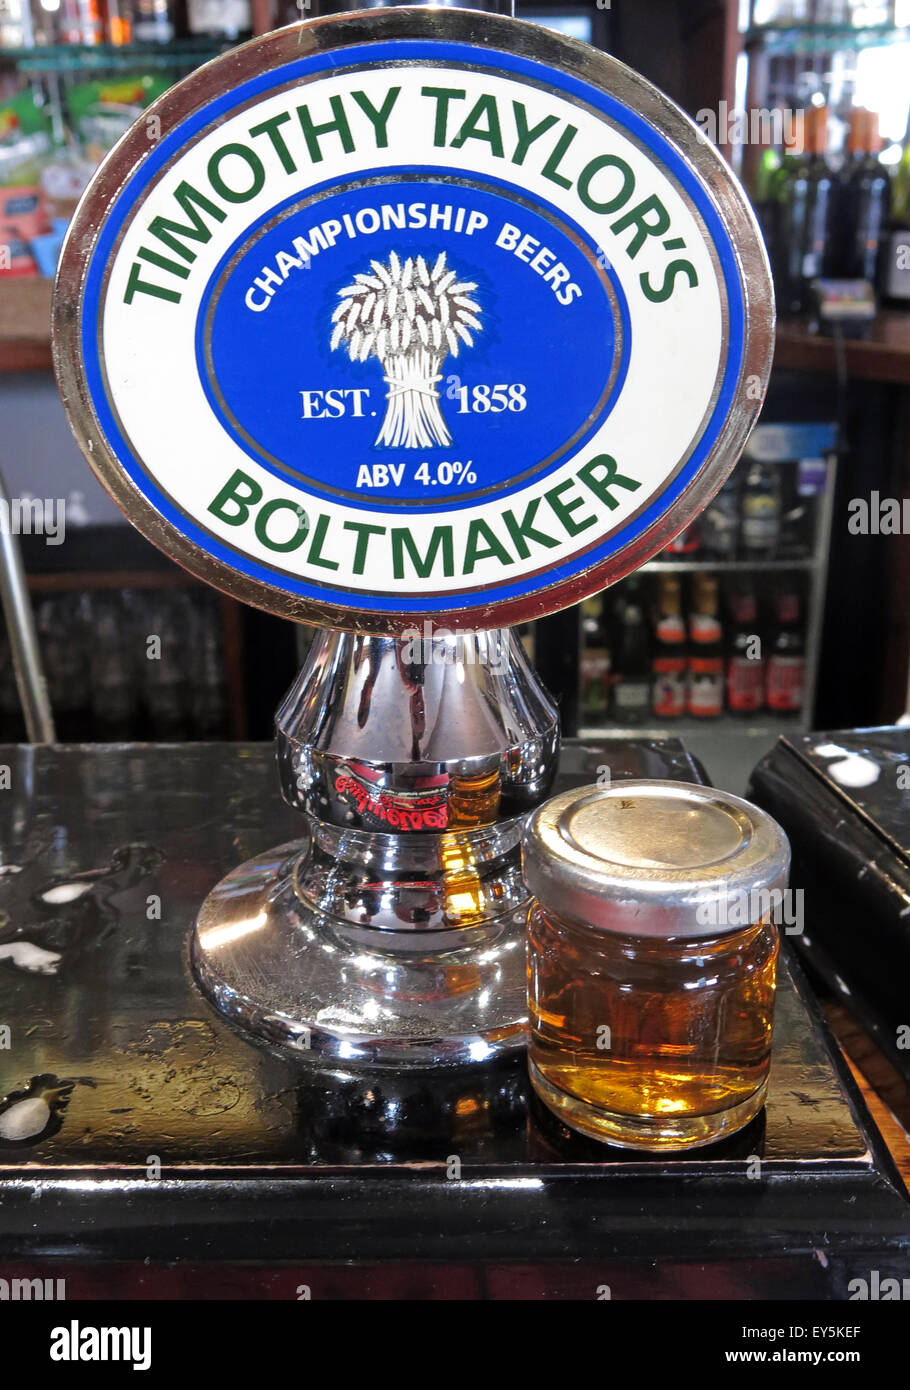 A pump and sample of Timothy Taylor Boltmaker Bitter, in a bar, Yorkshire, England, UK Stock Photo